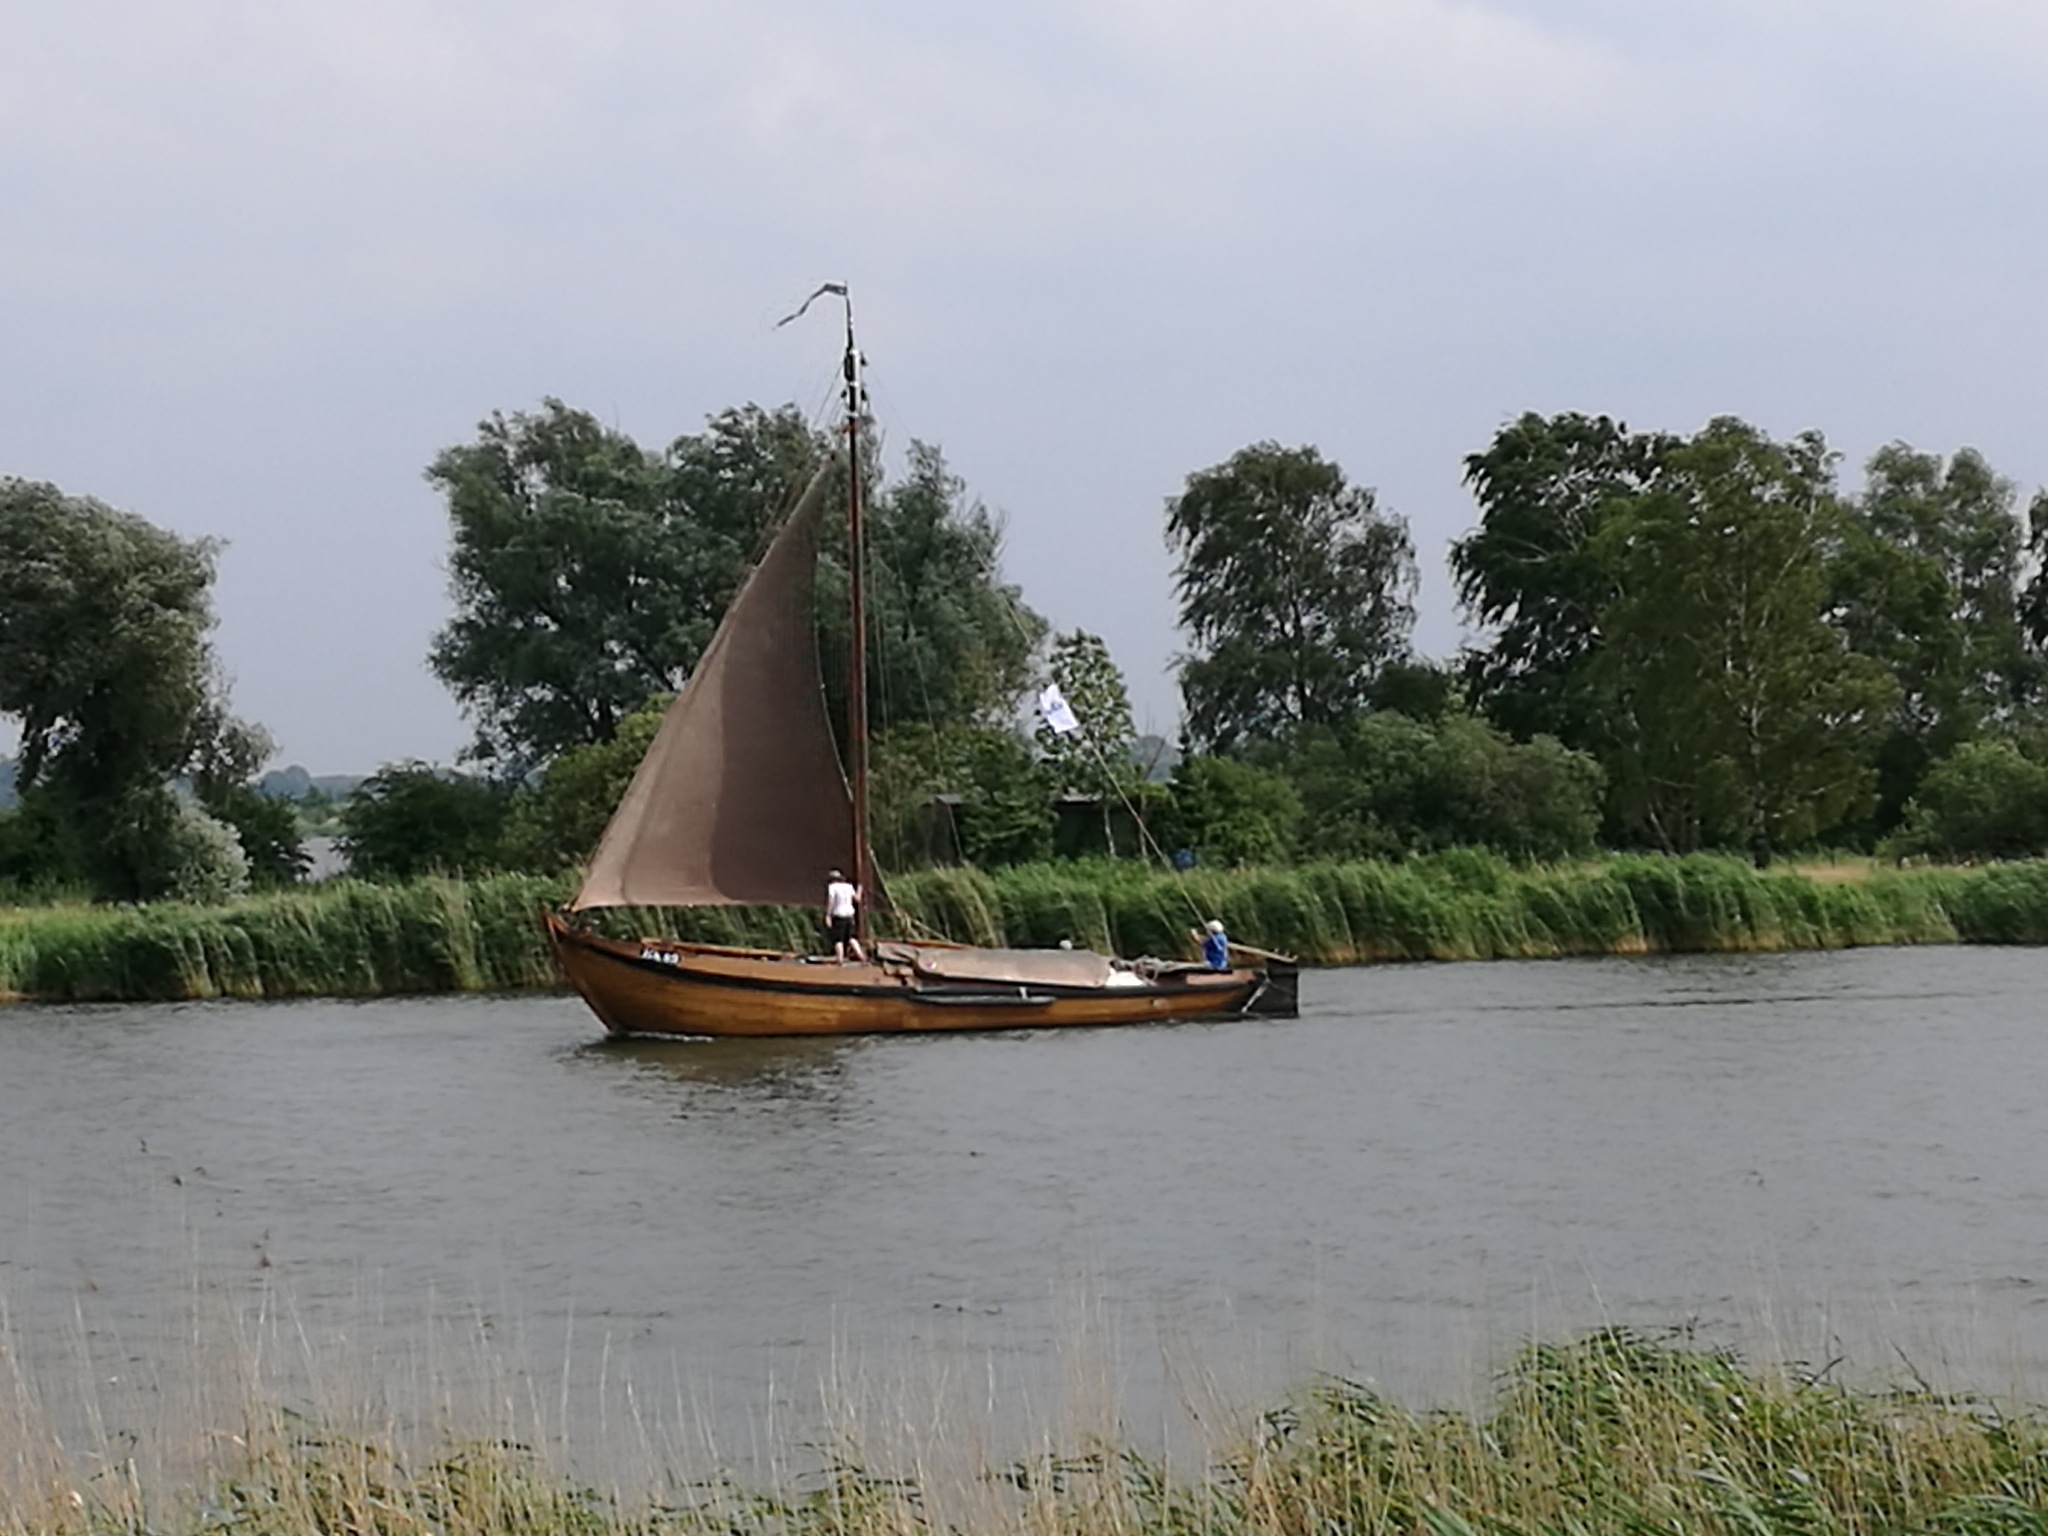 a botter sailing on the Veluwe meer in the Netherlands  by Edo Snippe